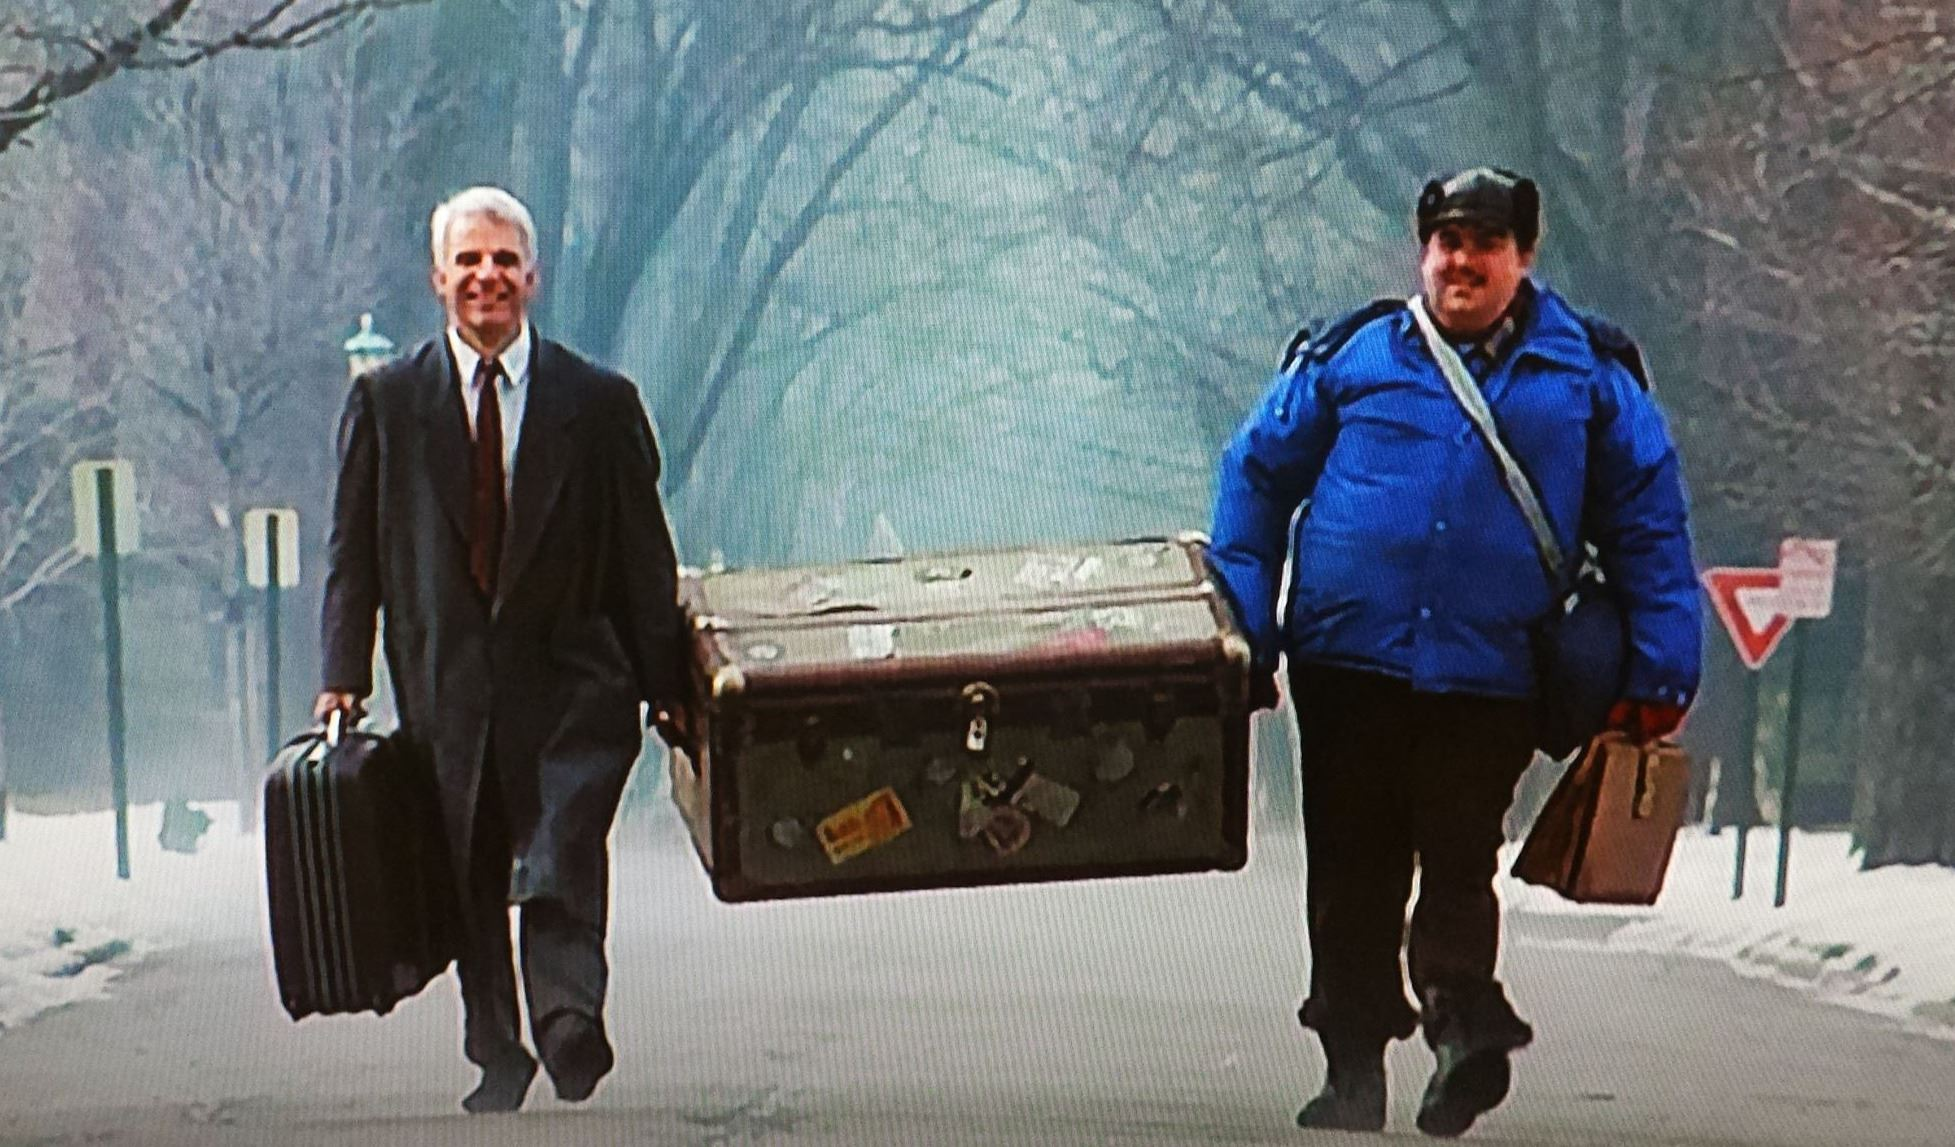 Planes-Trains-and-Automobiles-movie-Steve-Martin-John-Candy